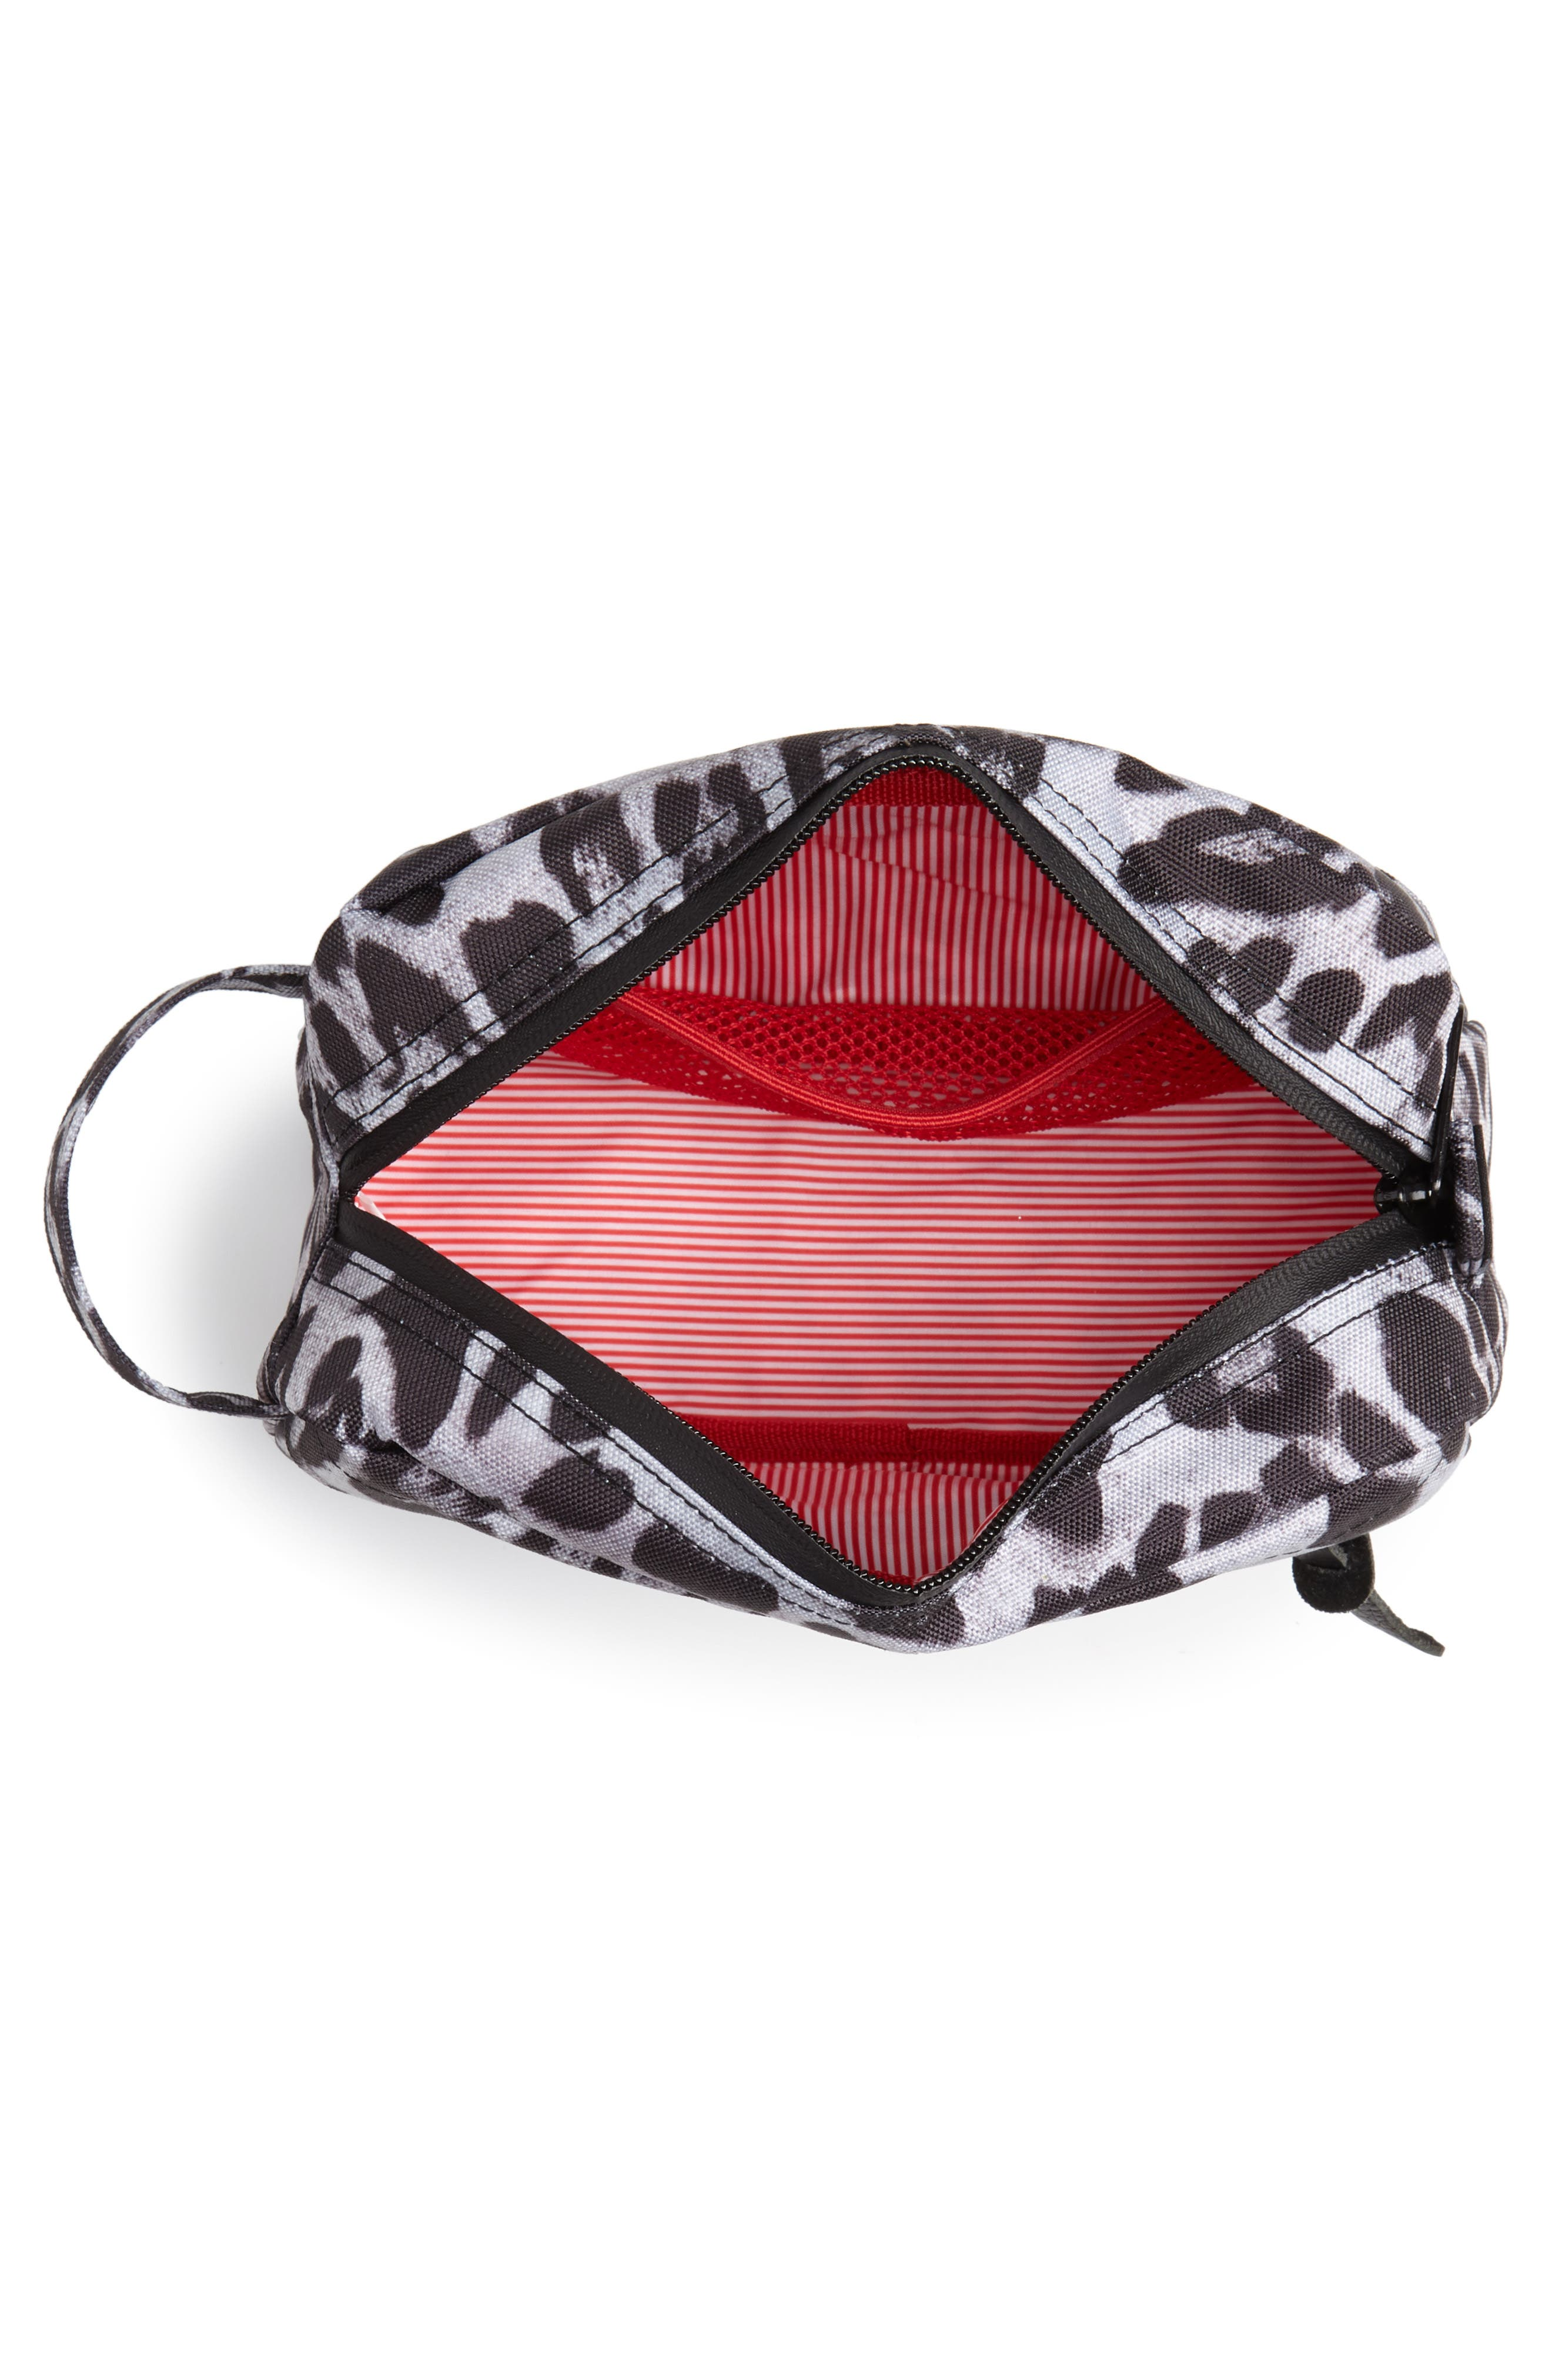 Chapter Carry-On Travel Kit,                             Alternate thumbnail 3, color,                             SNOW LEOPARD